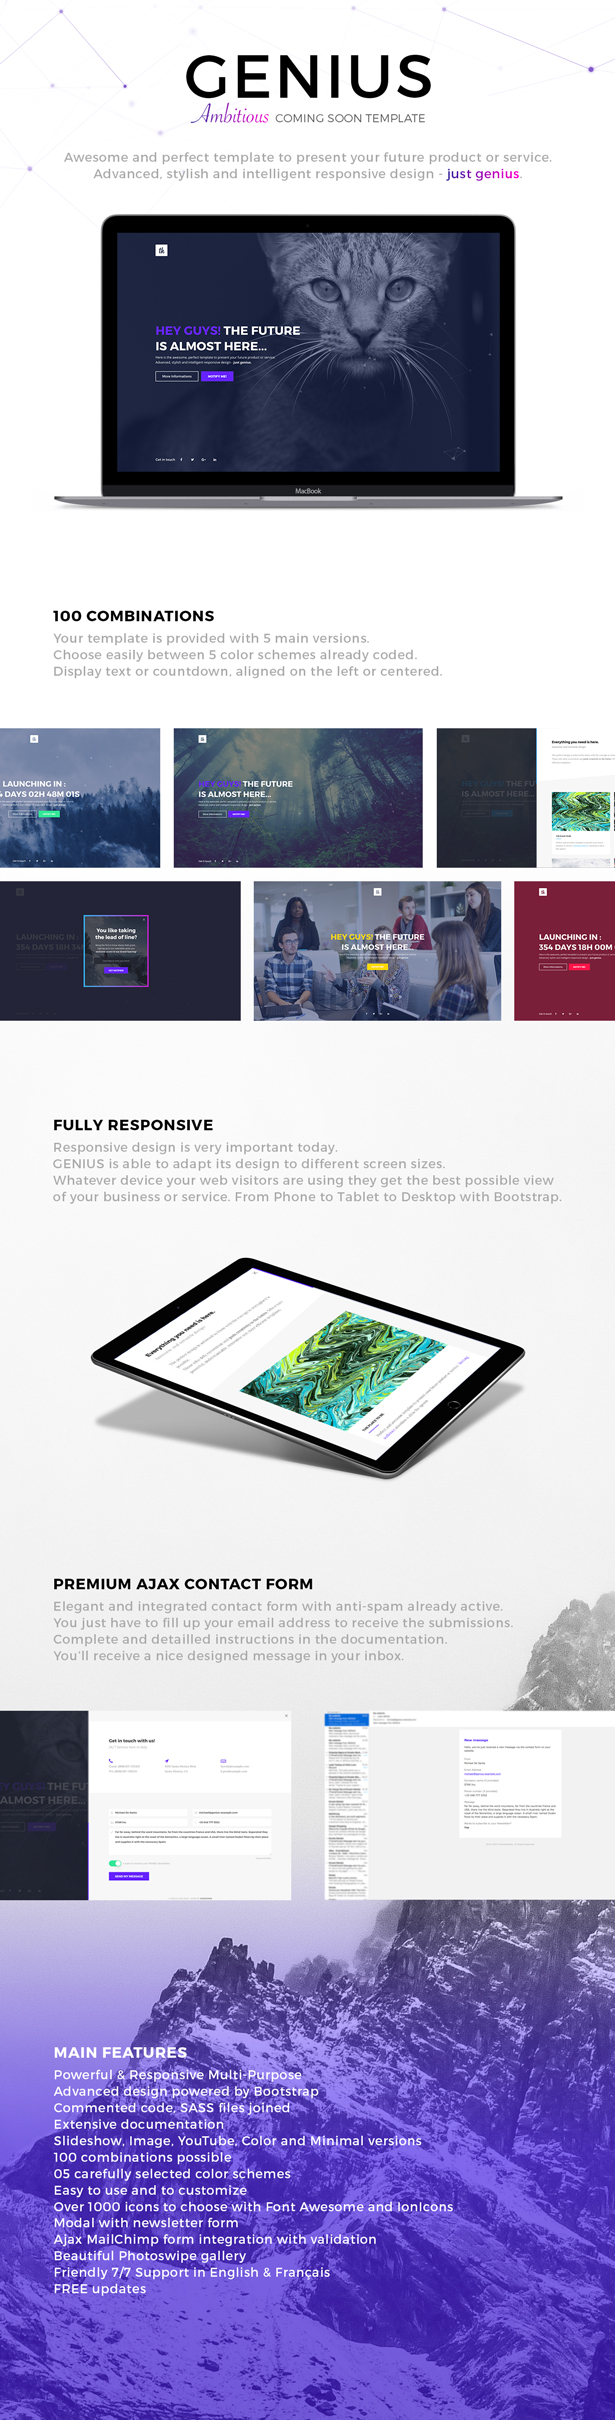 Genius ambitious coming soon template by madeon08 themeforest genius ambitious coming soon template falaconquin